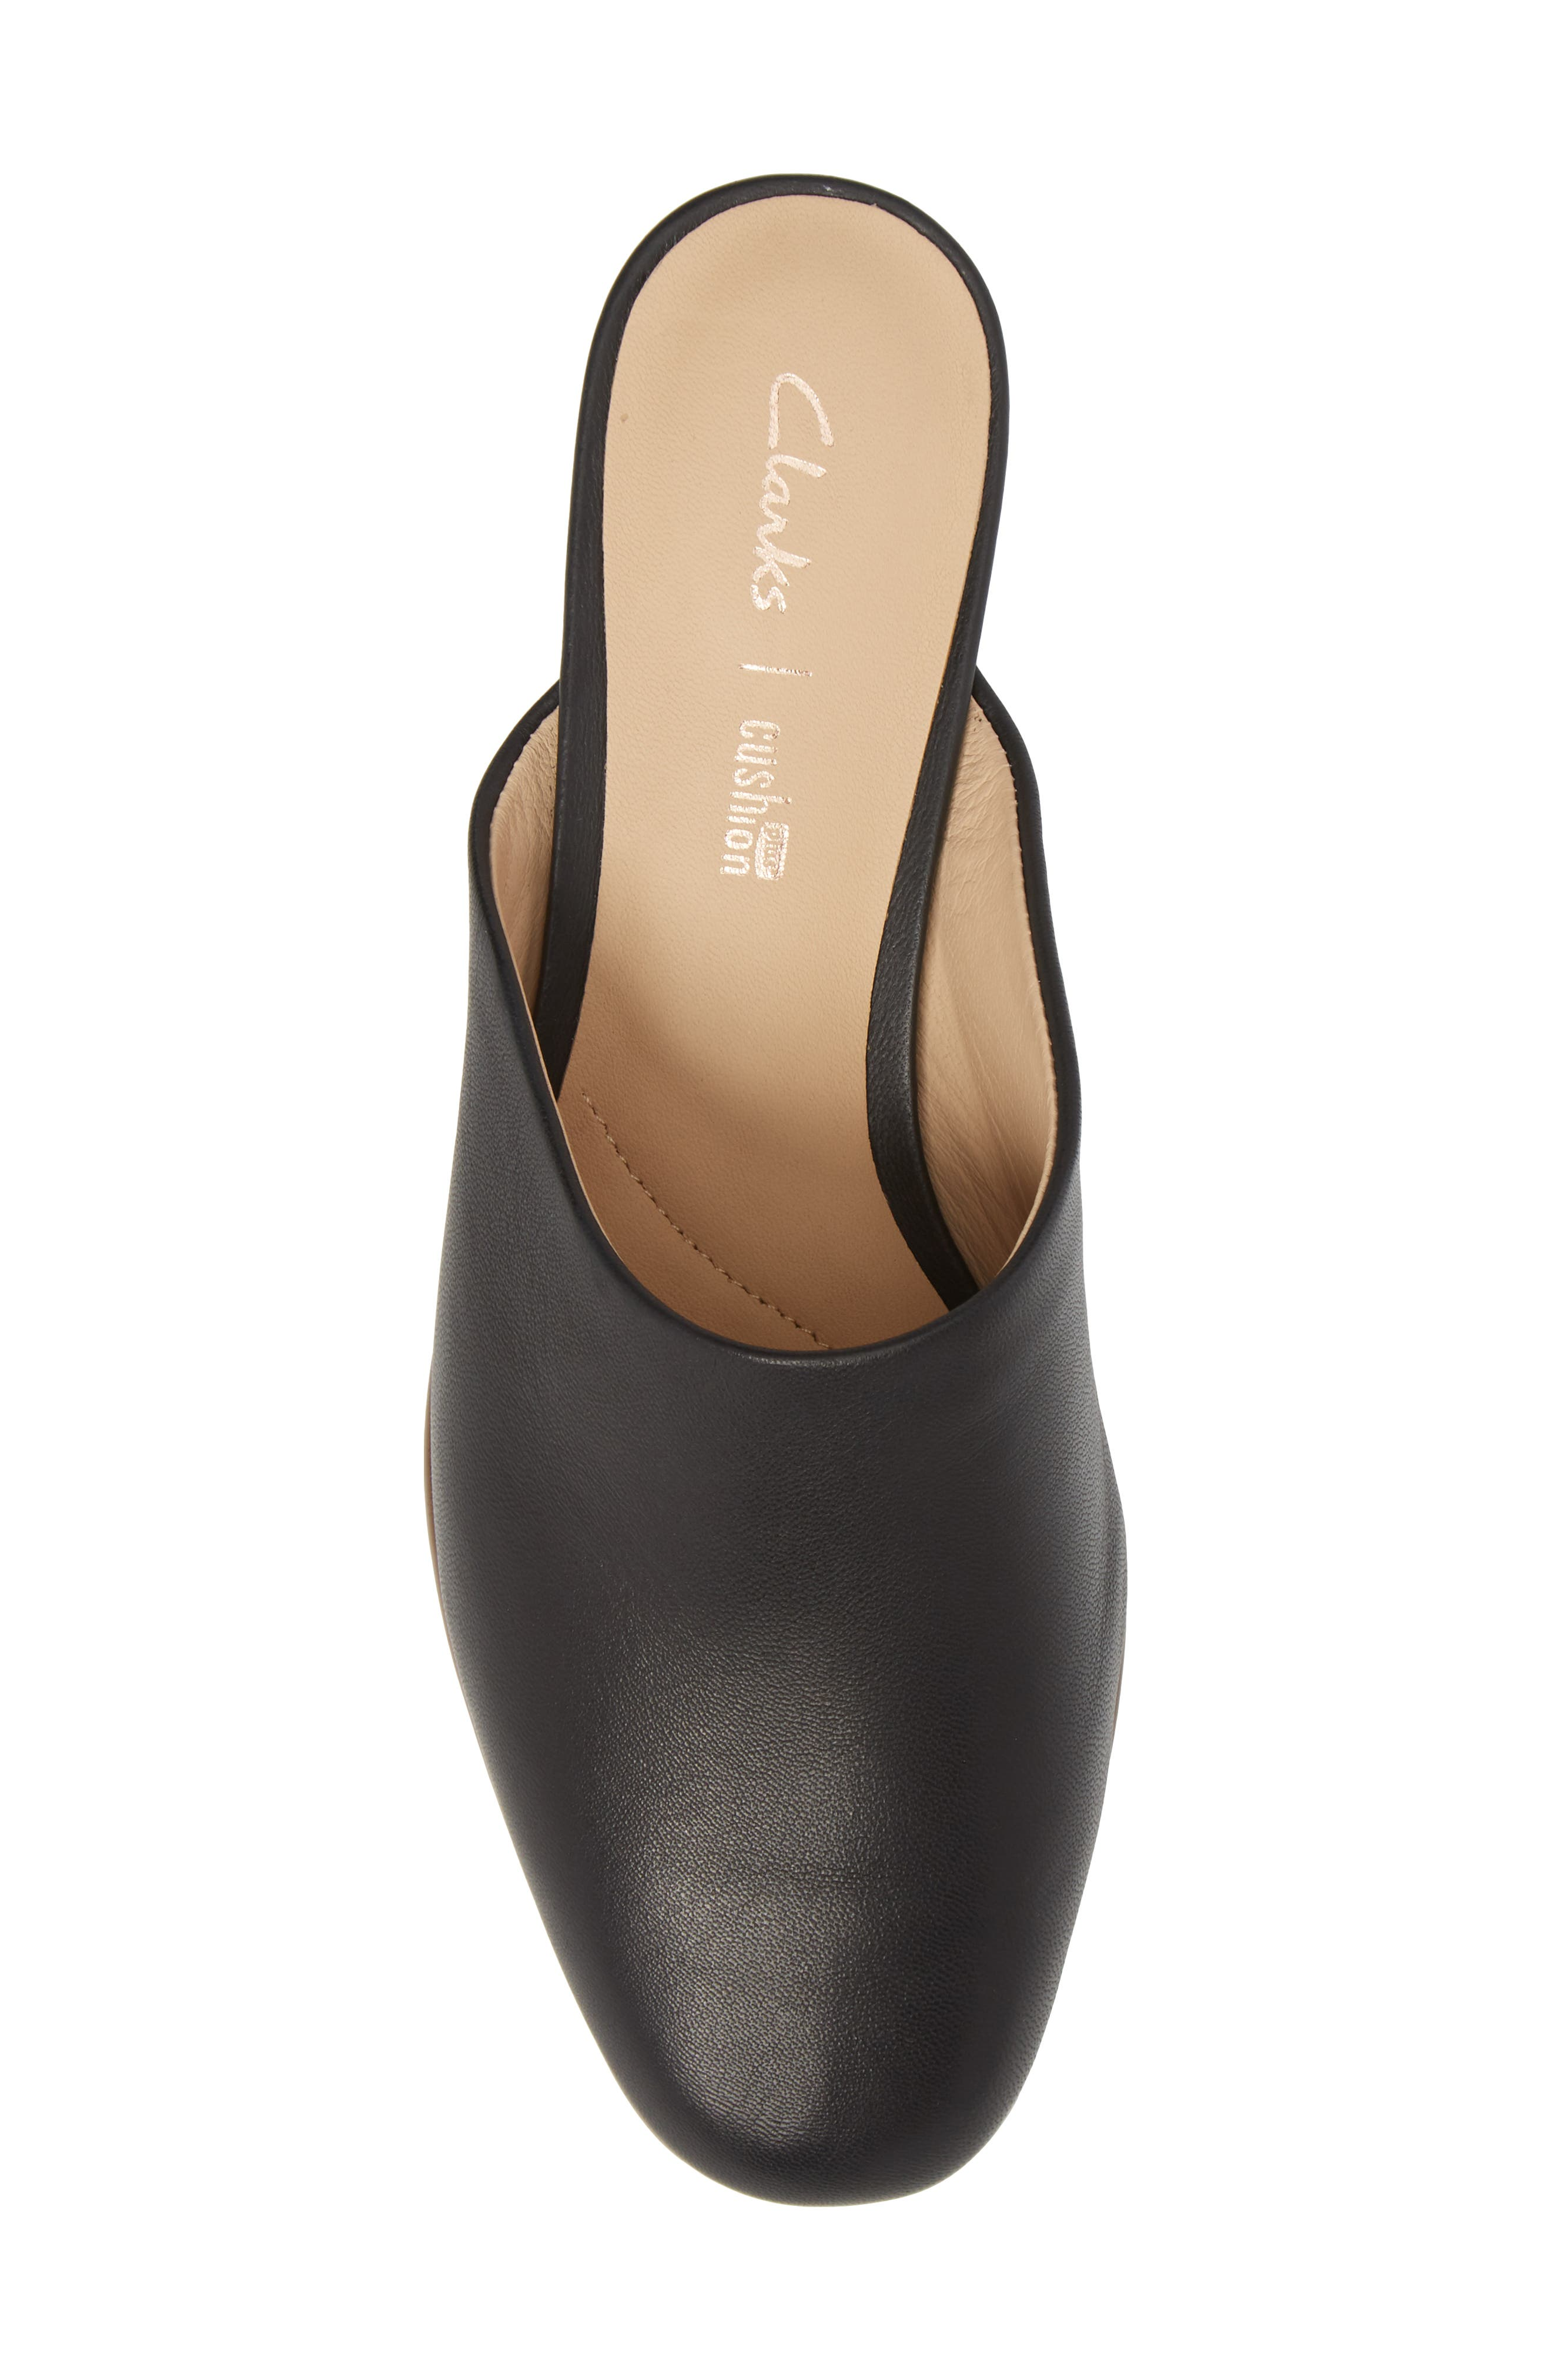 CLARKS<SUP>®</SUP>, Pure Blush Mule, Alternate thumbnail 5, color, BLACK LEATHER